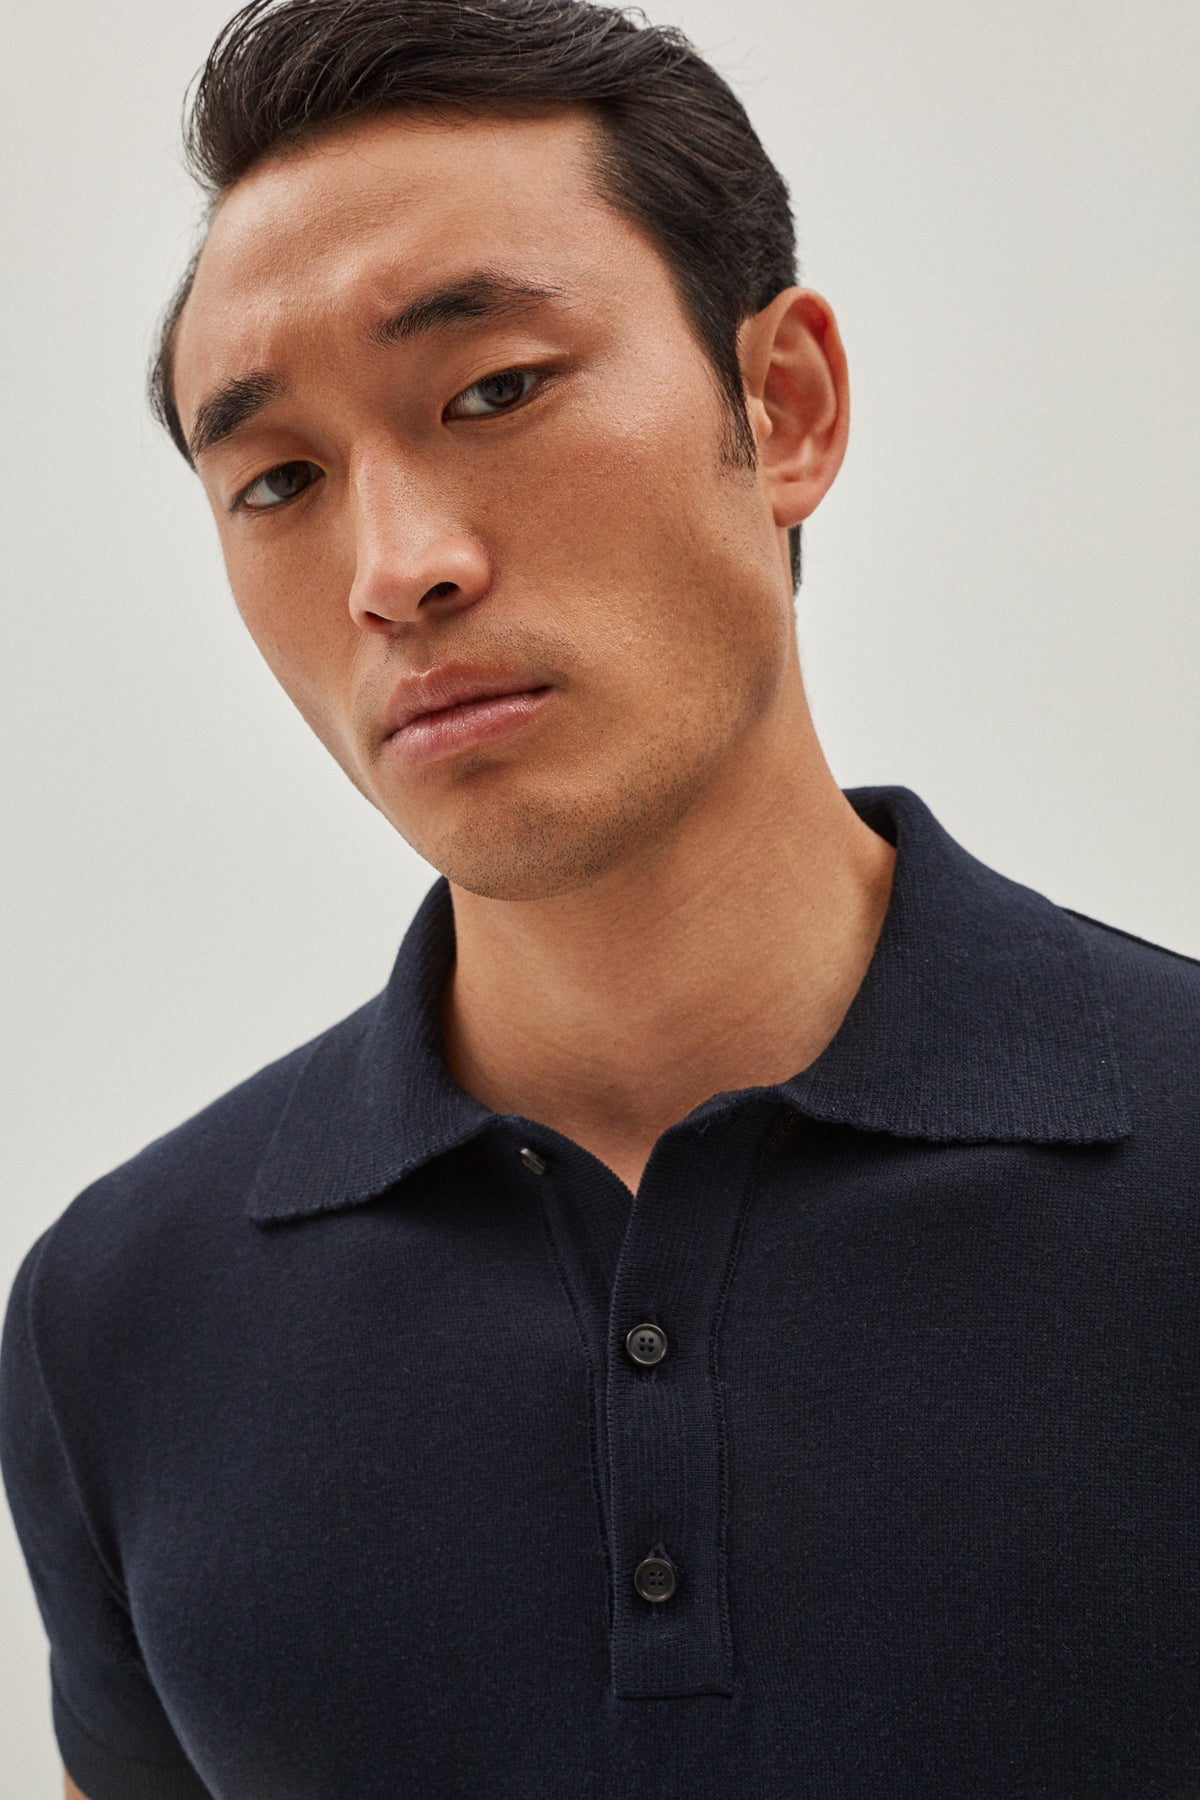 The Lightweight Silk Polo - Blue Navy